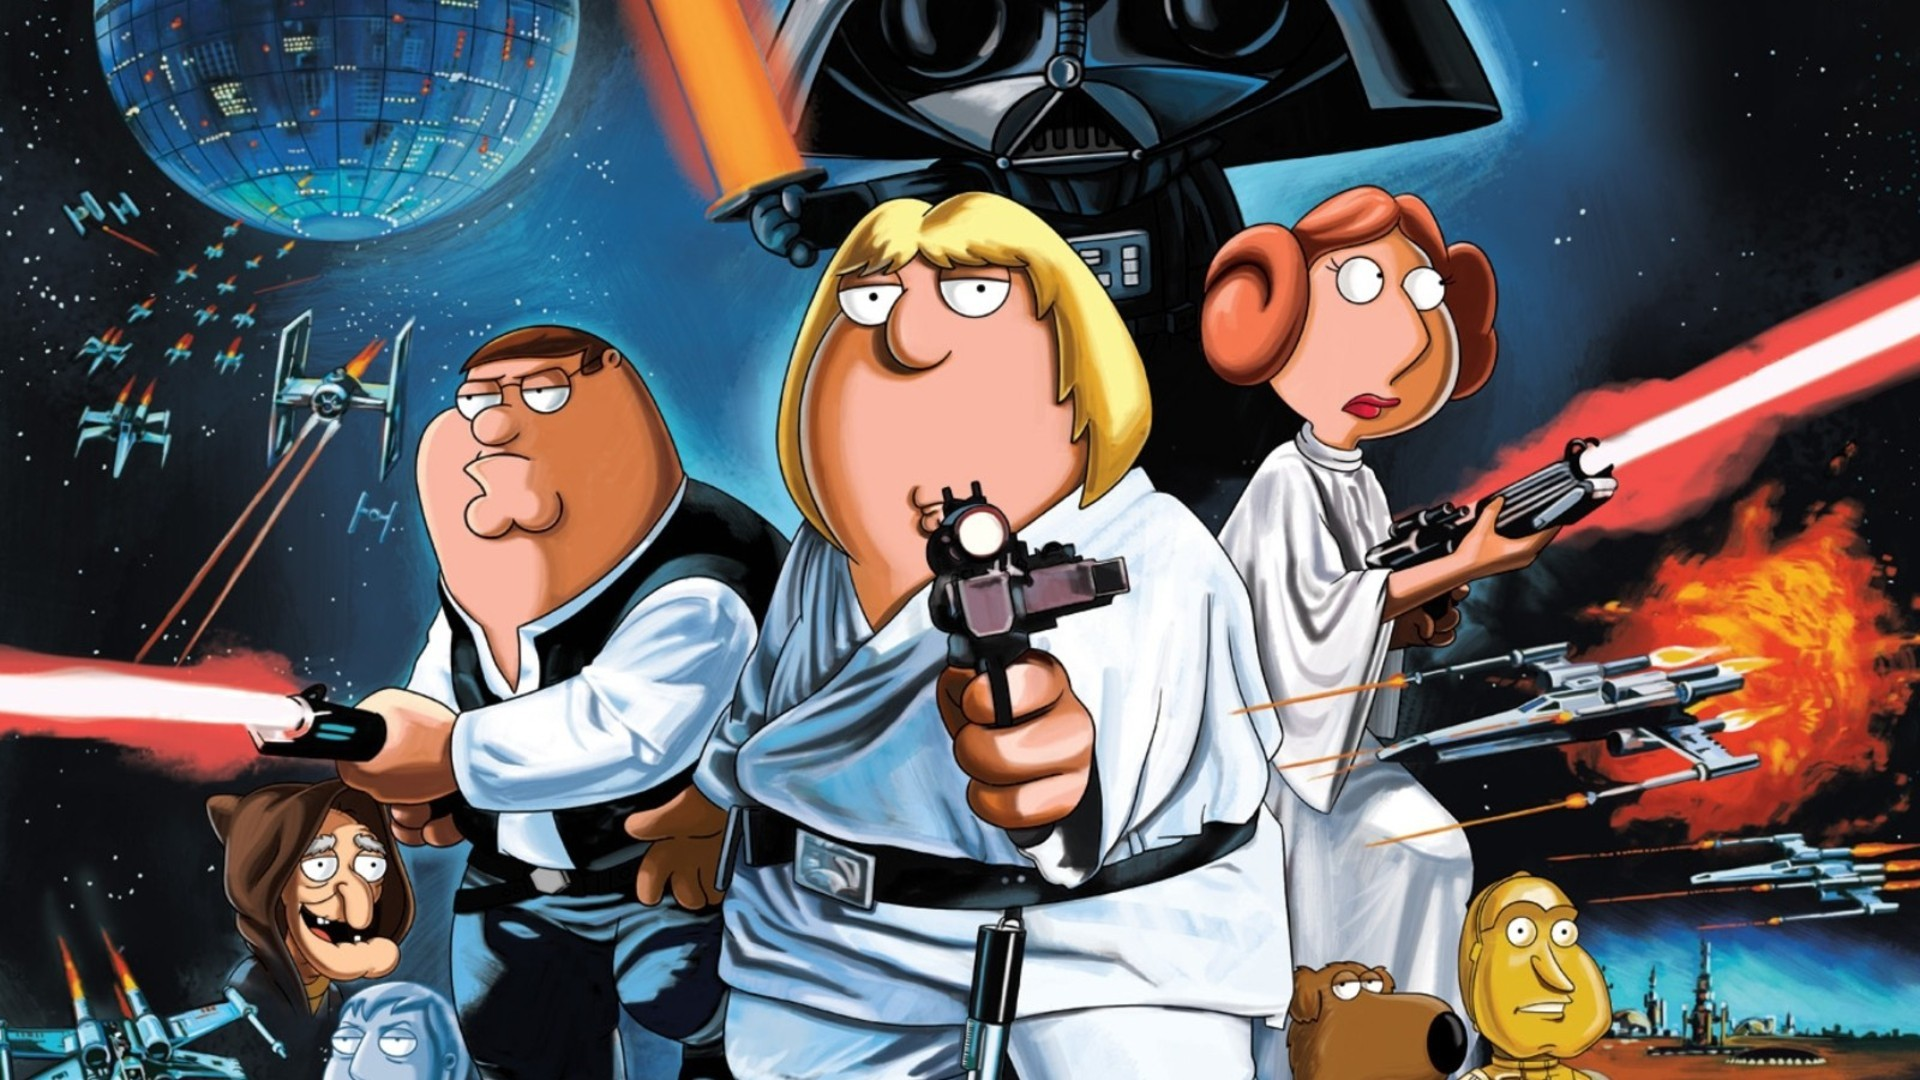 wallpaper Star Wars · Family Guy · The Nightmare Before Christmas